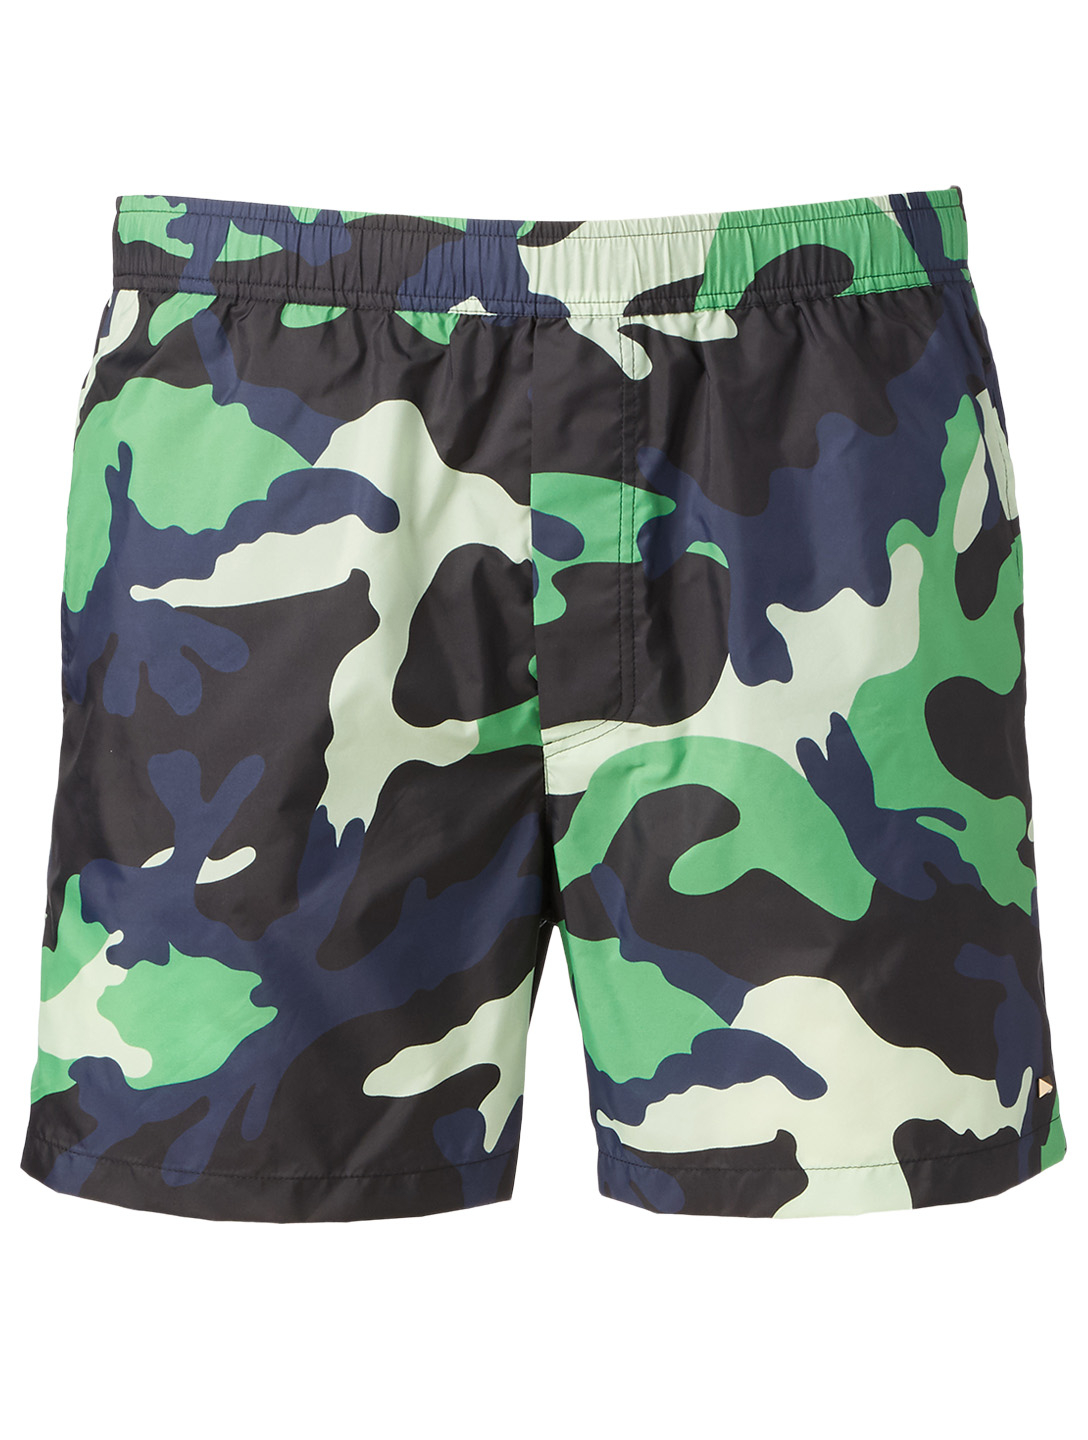 VALENTINO Swim Shorts In Camo Print Men's Multi